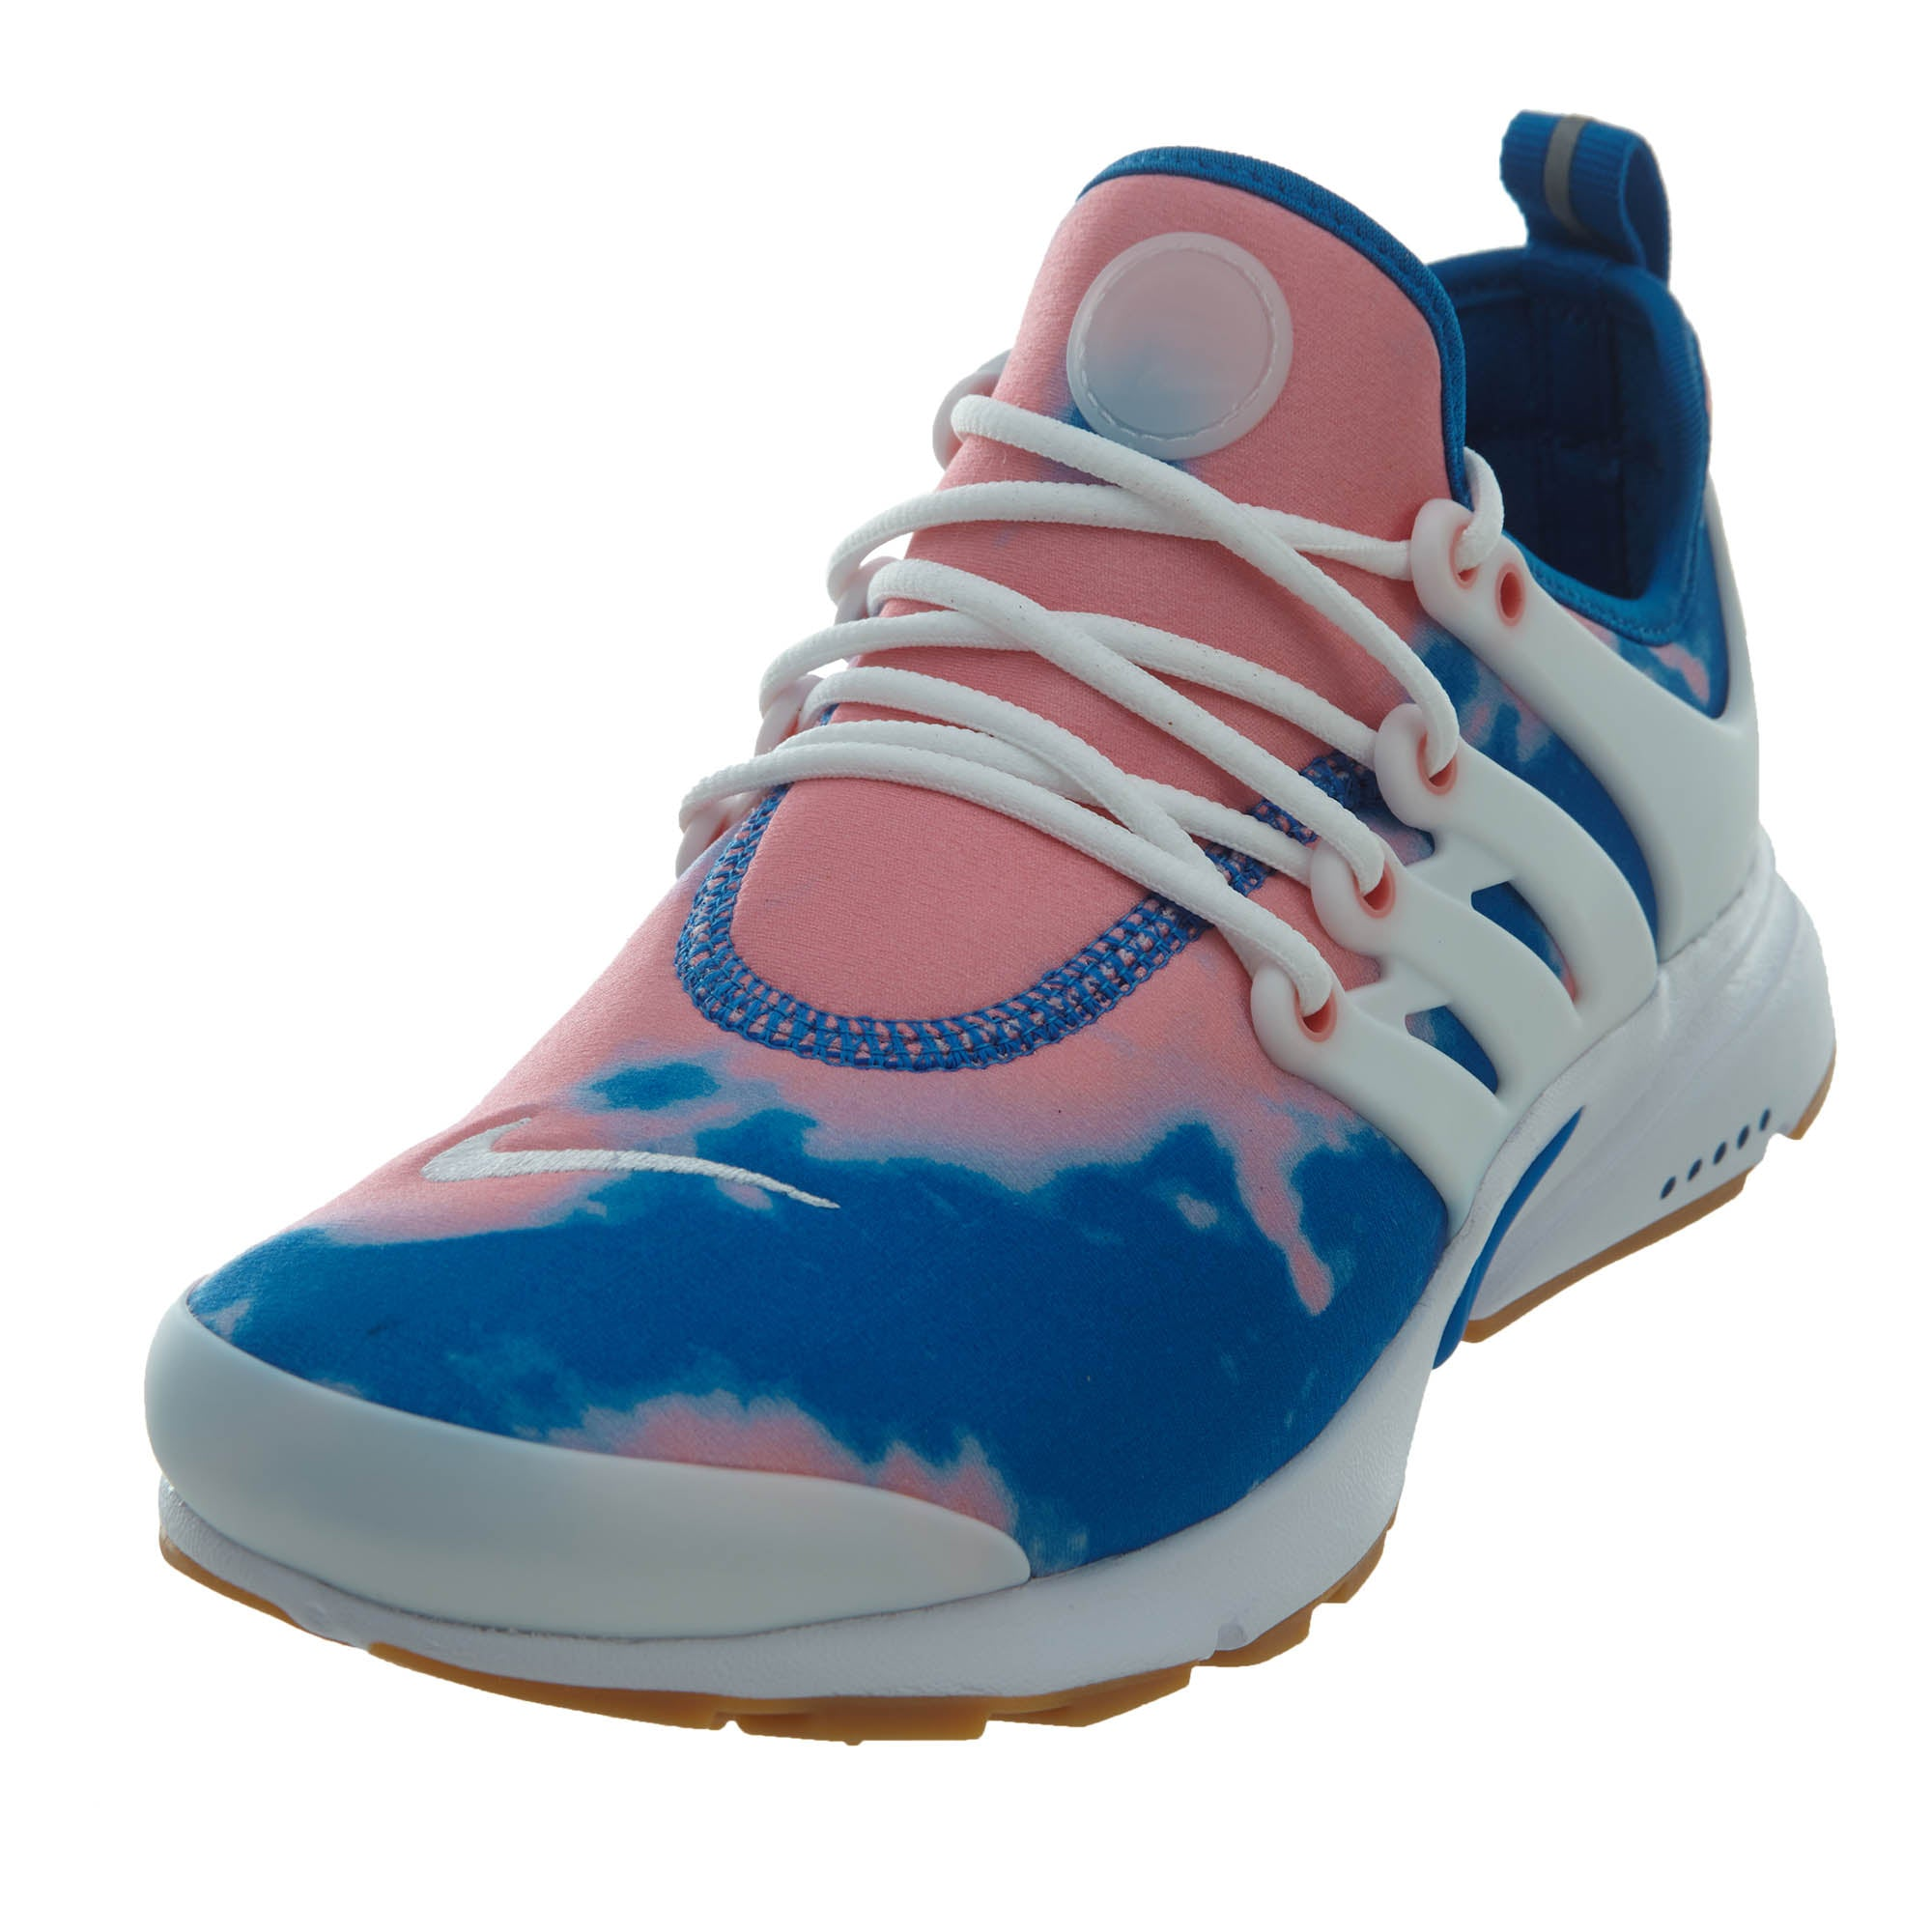 new style 22c8a 114d2 Nike Air Presto Tie Dye Blue Nebula Coral Womens Style ...